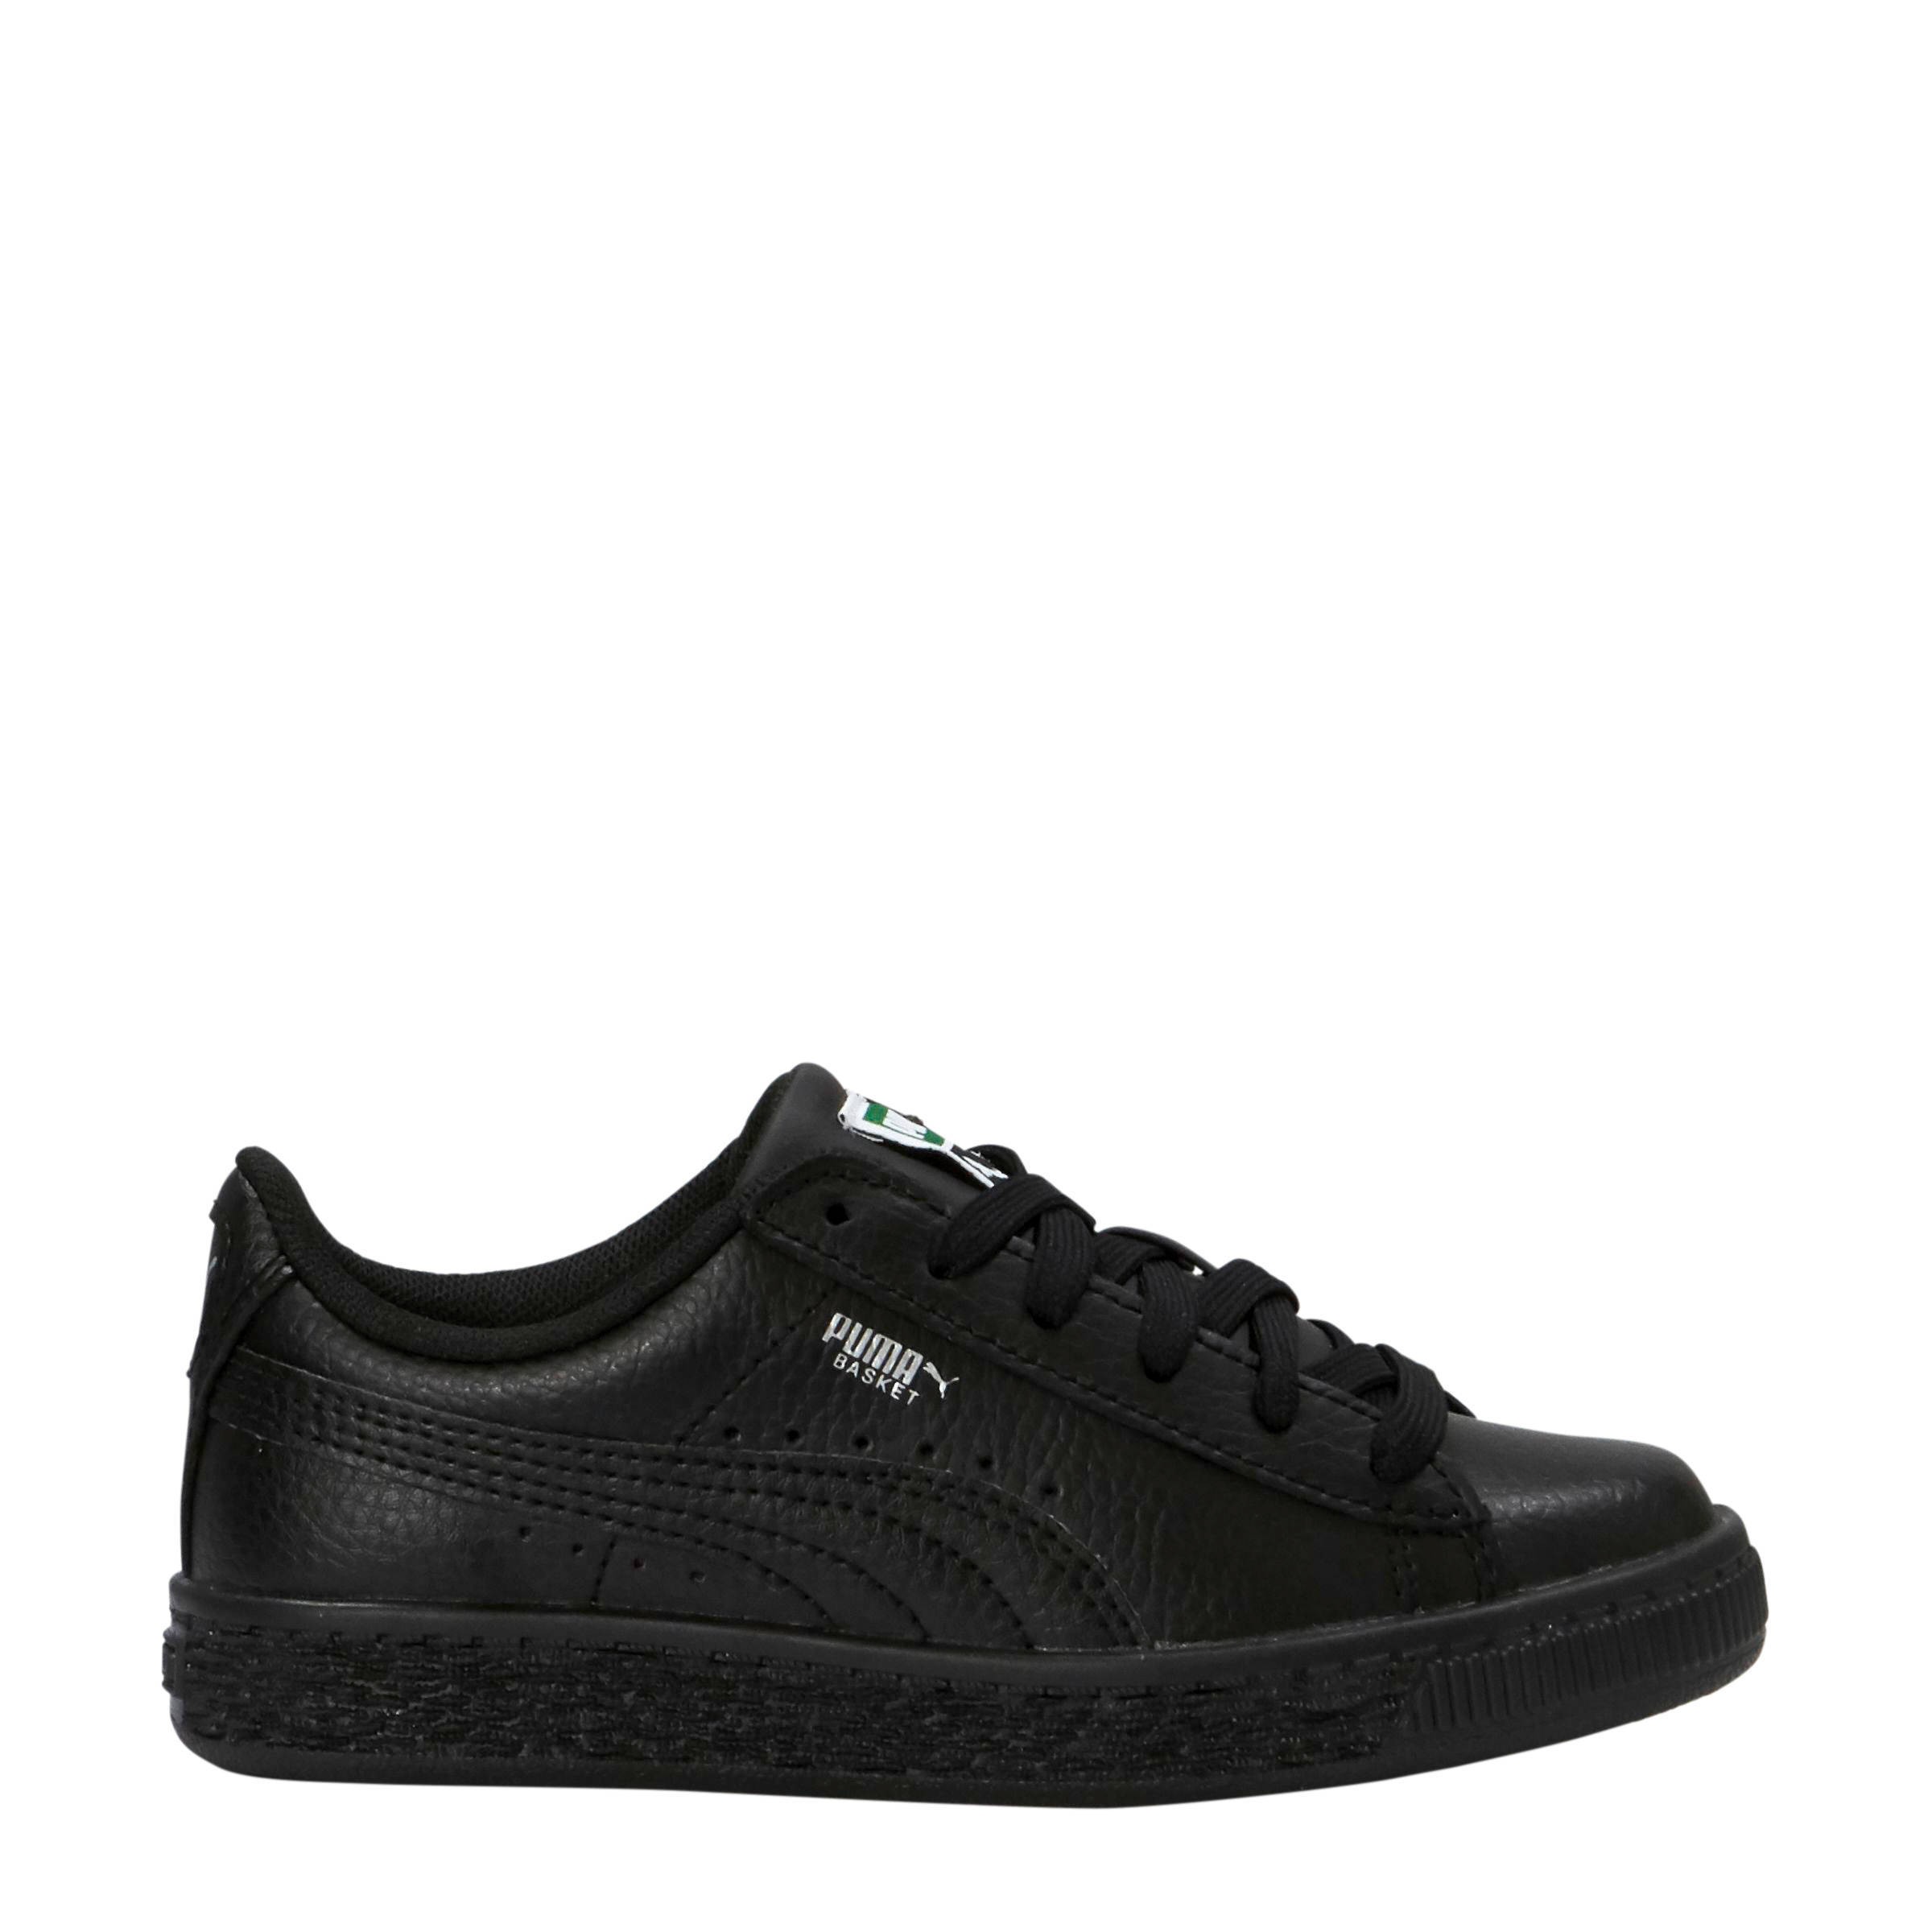 Basket Classic LFS ps sneakers zwart